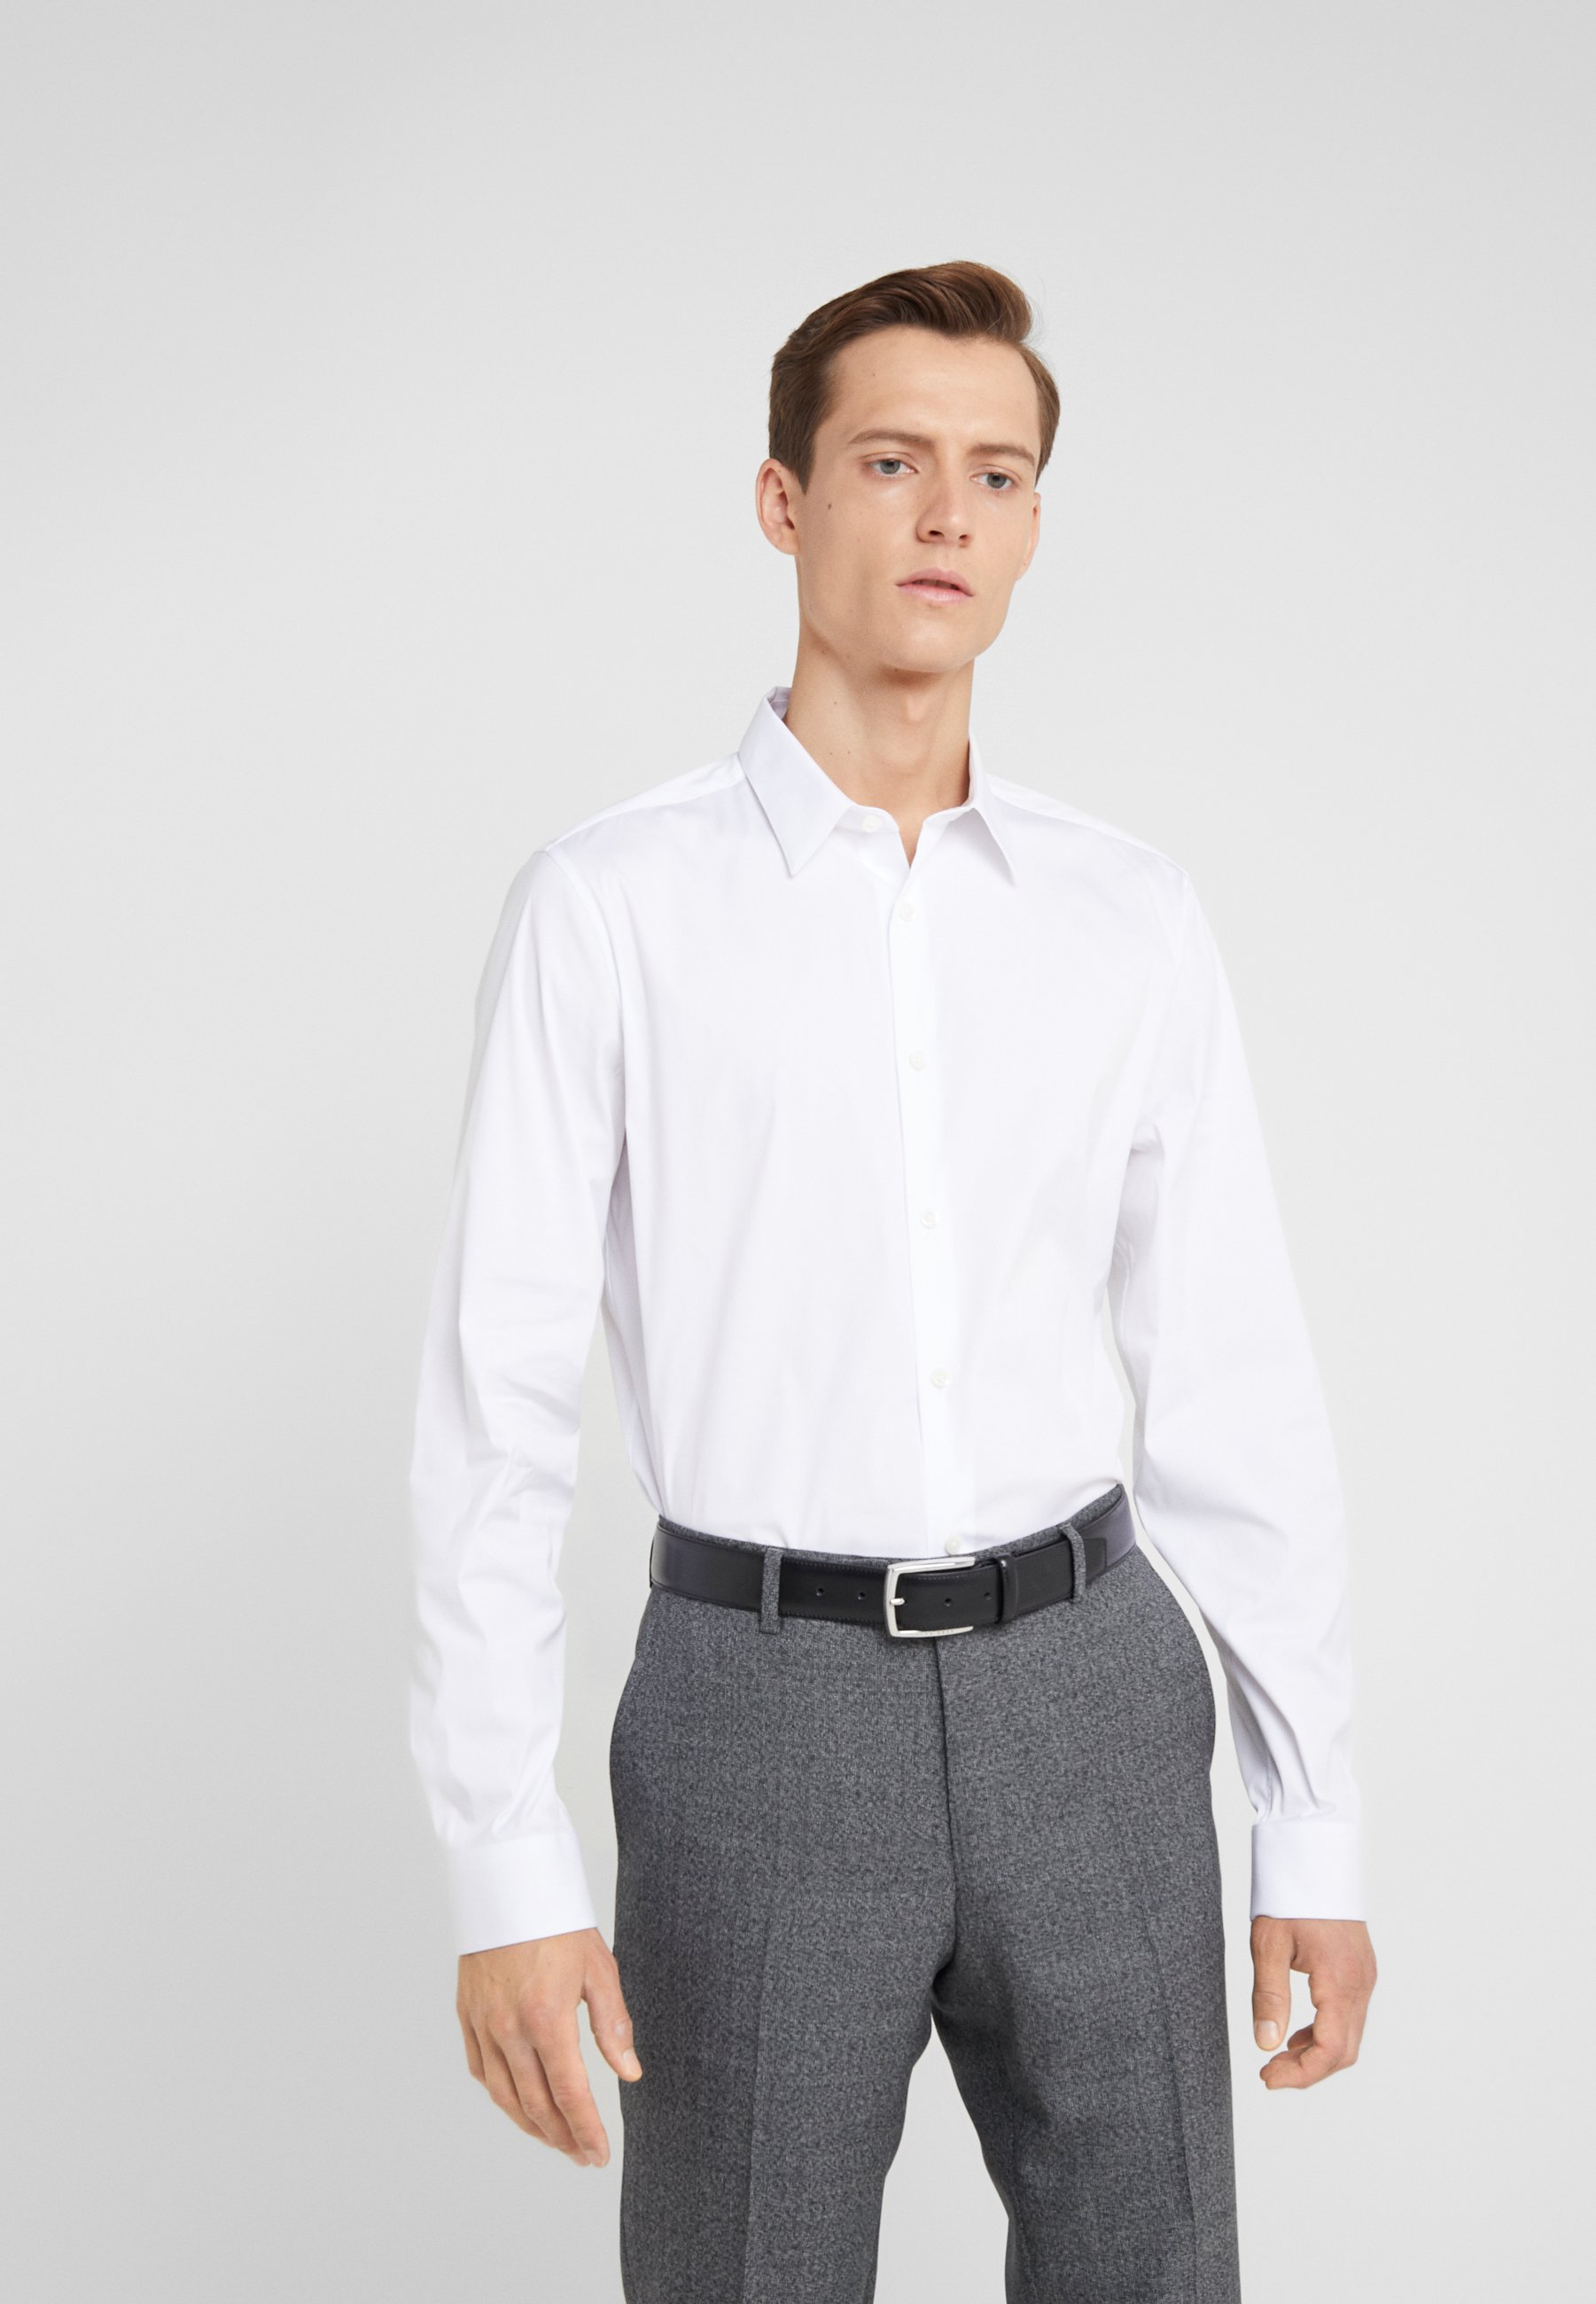 Theory SylvainChemise Classique Theory SylvainChemise Classique White White 2EHe9YDWI